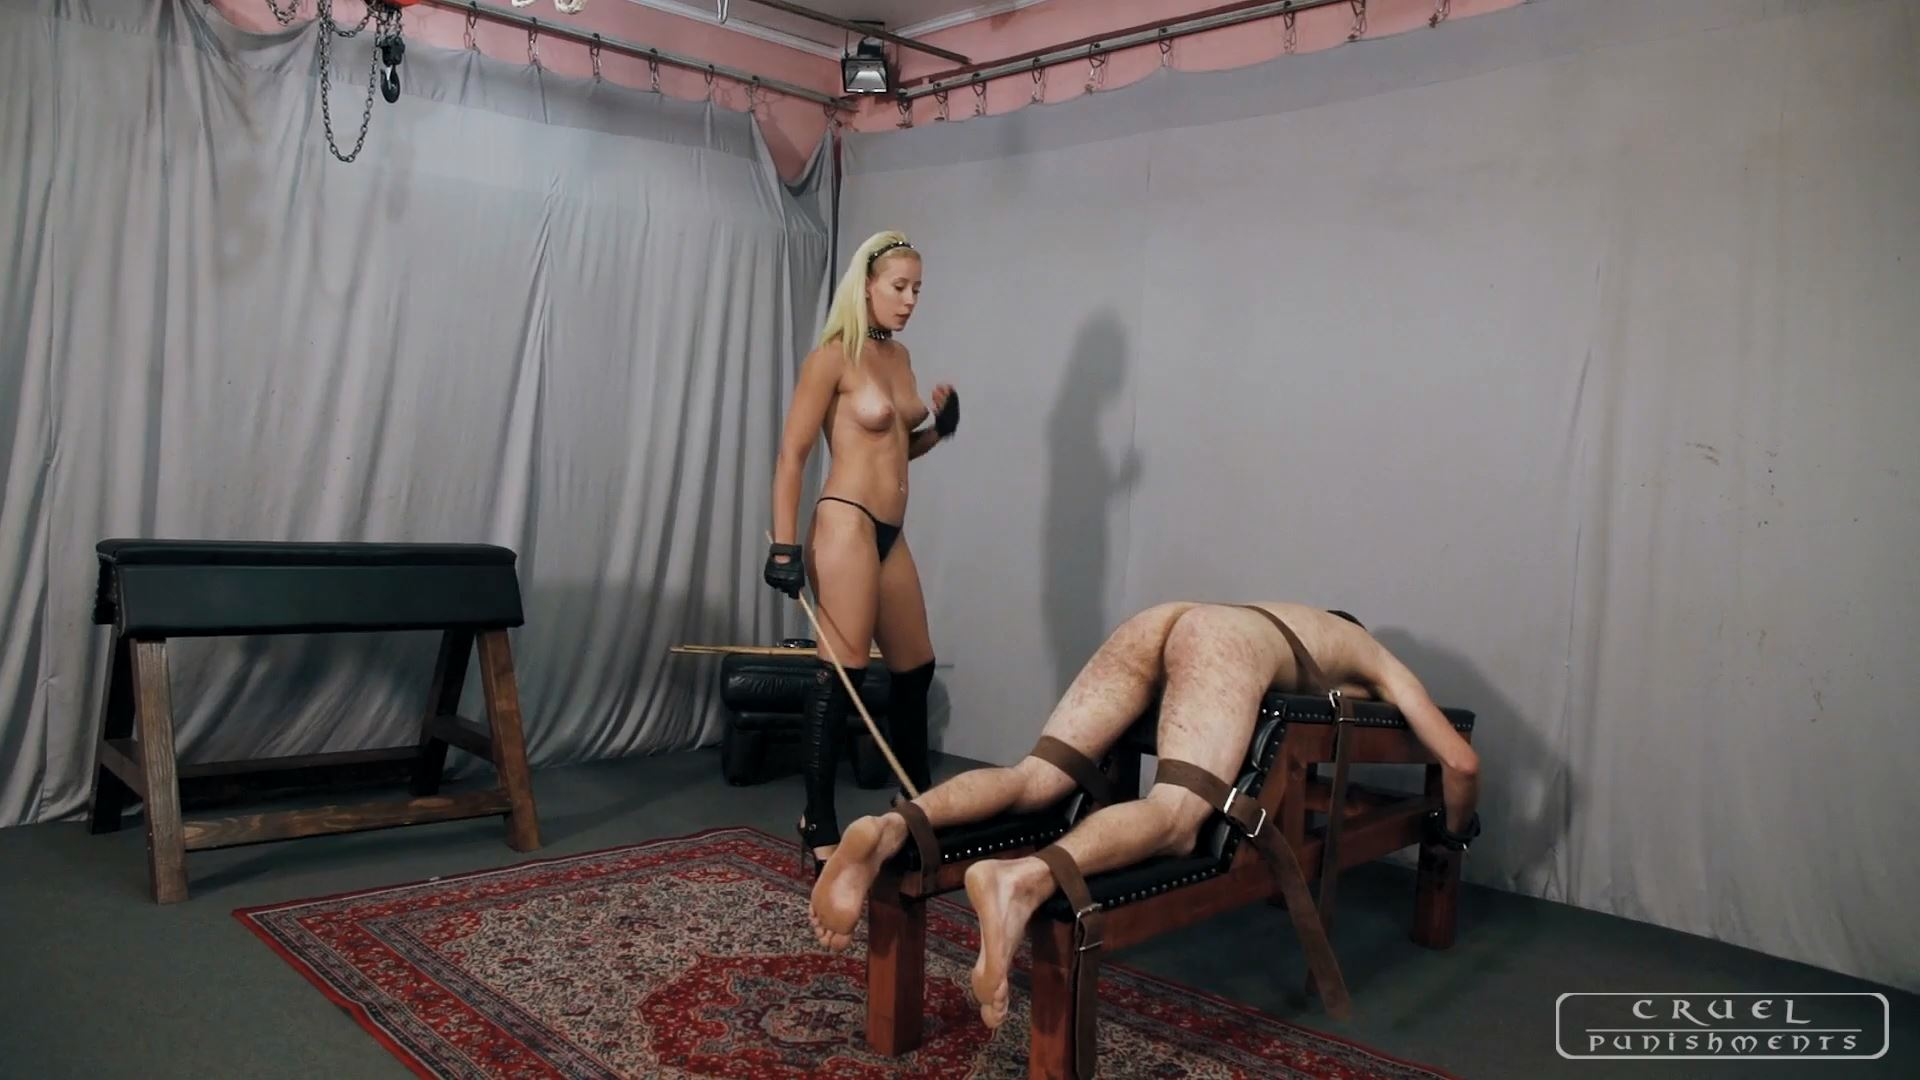 Mistress Anette In Scene: Anette's forceful strokes Part 1 - CRUEL PUNISHMENTS - SEVERE FEMDOM - FULL HD/1080p/MP4